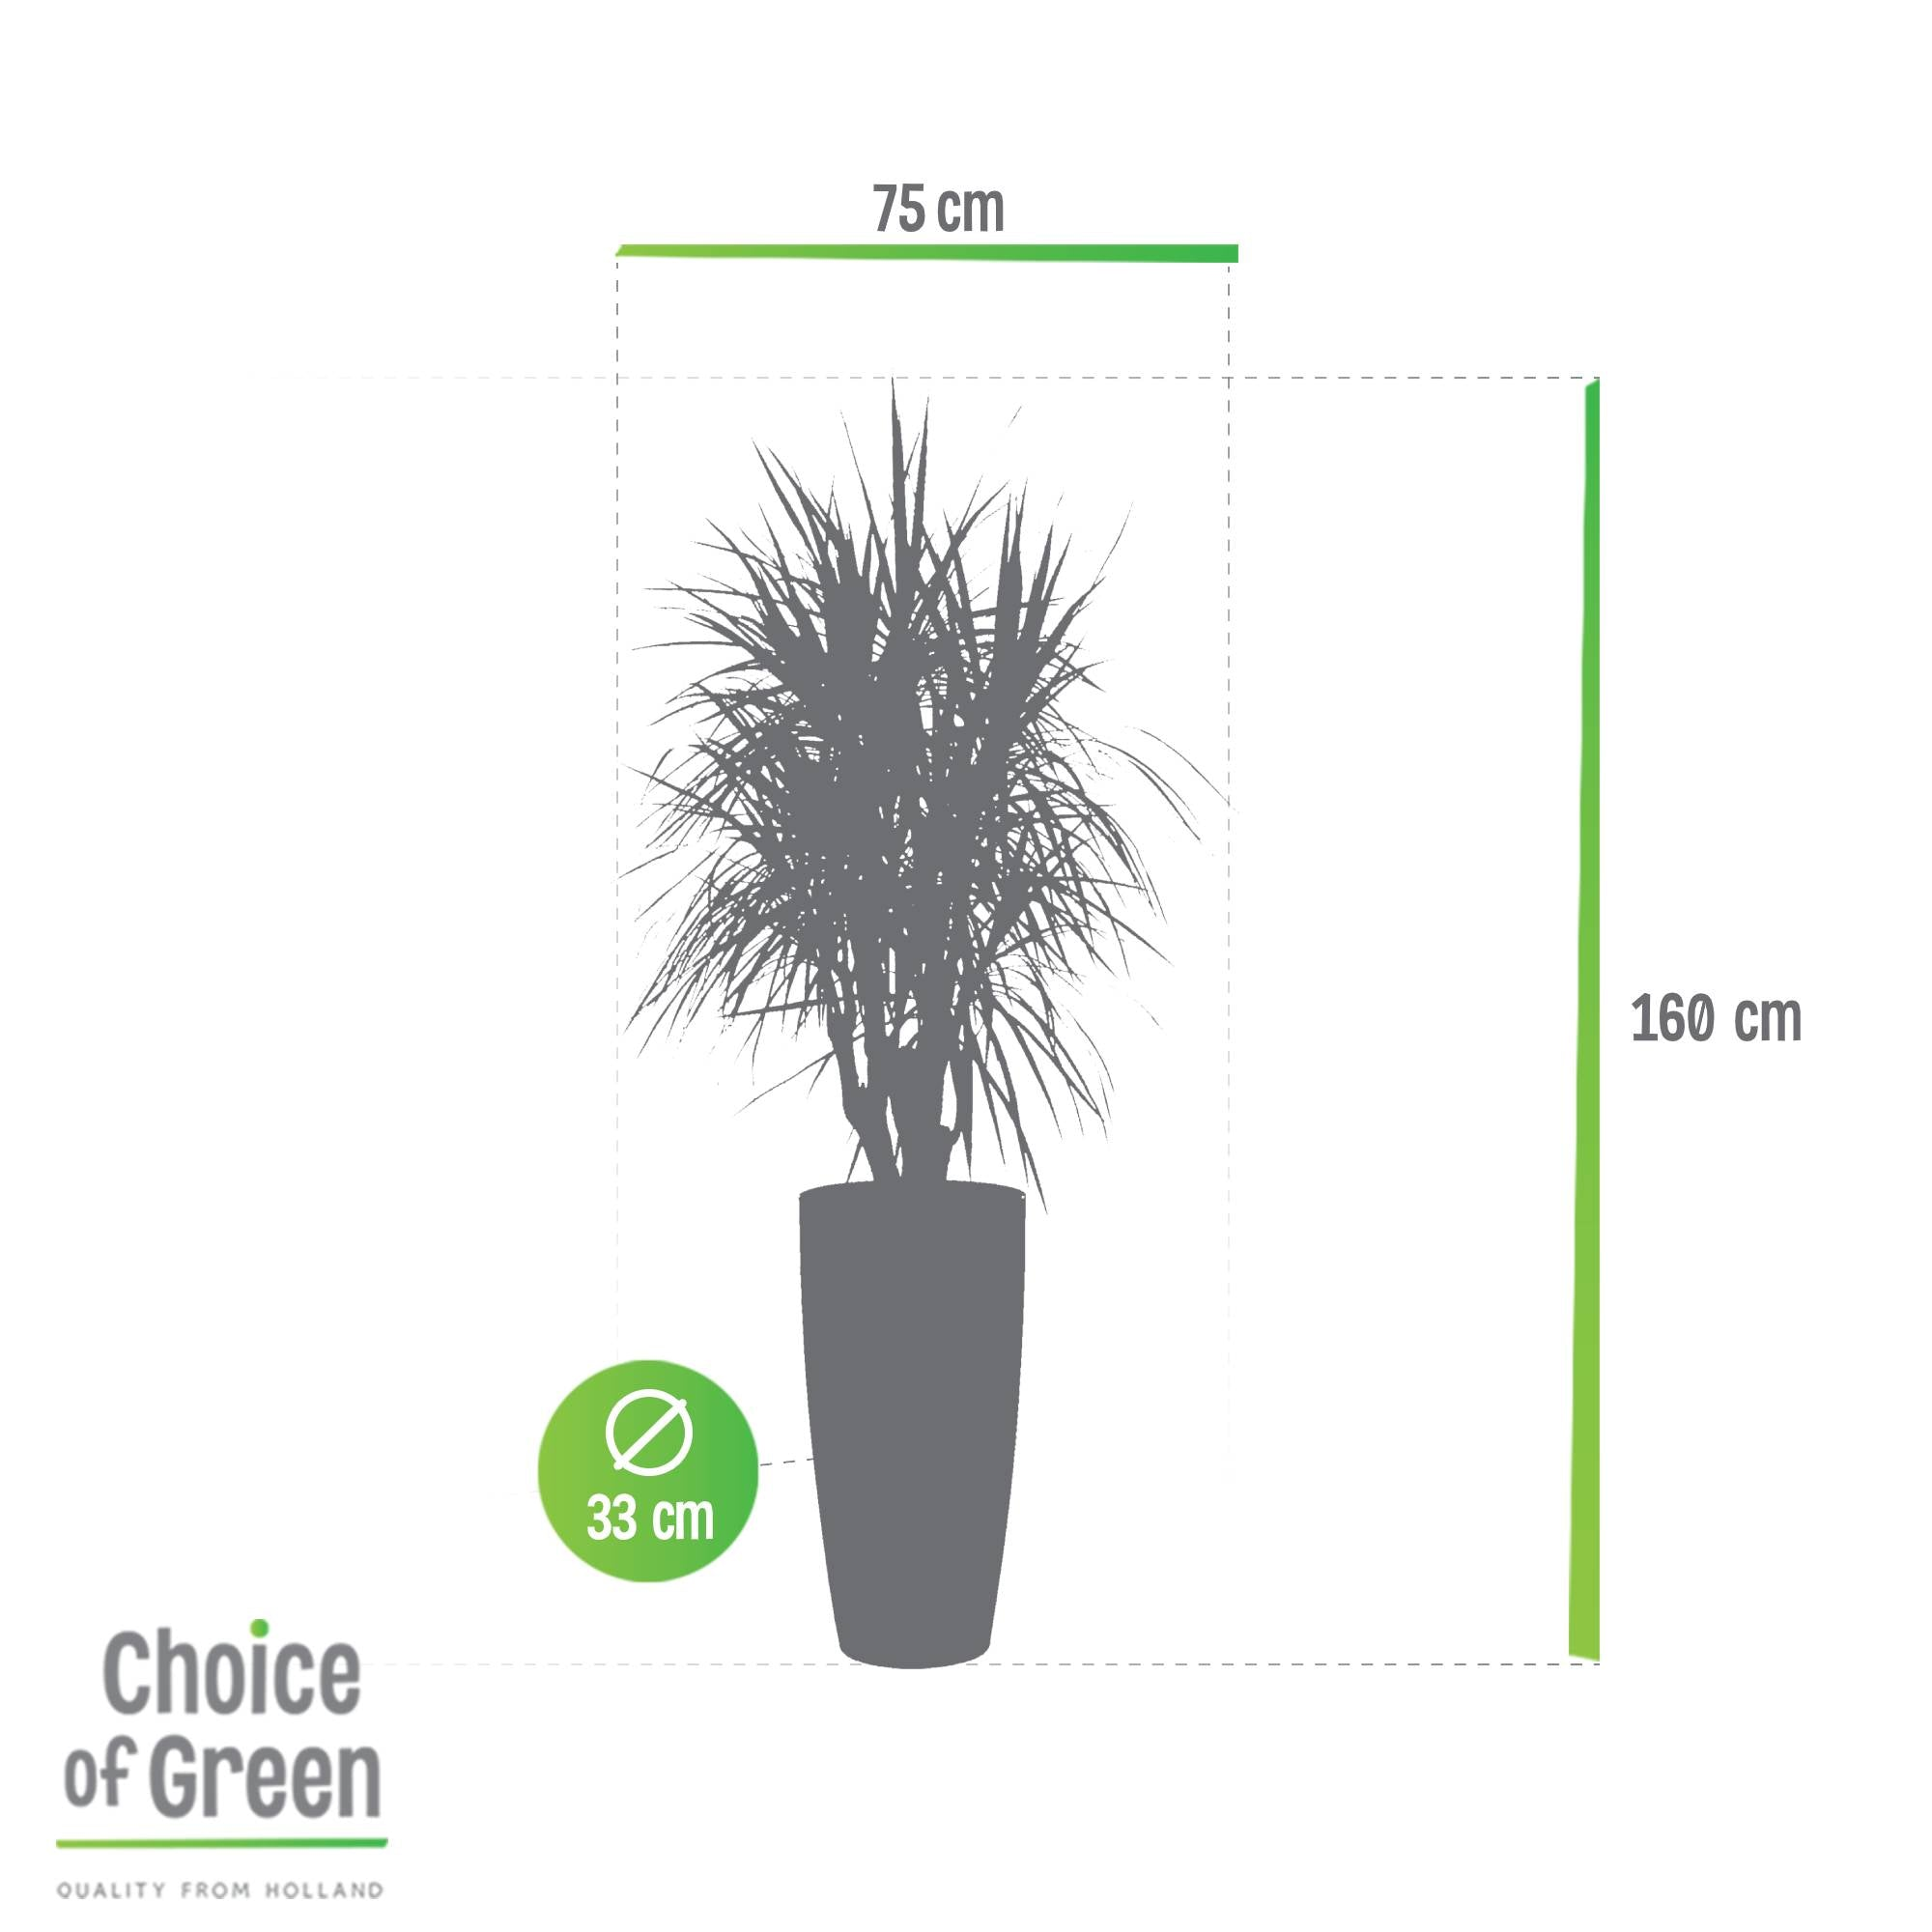 Choice of Green - Dracaena marginata - Drakenbloedboom - in SANTORINI pot taupe - Semi-Hydroculture - Hoogte 160 cm - Diameter pot 33 cm